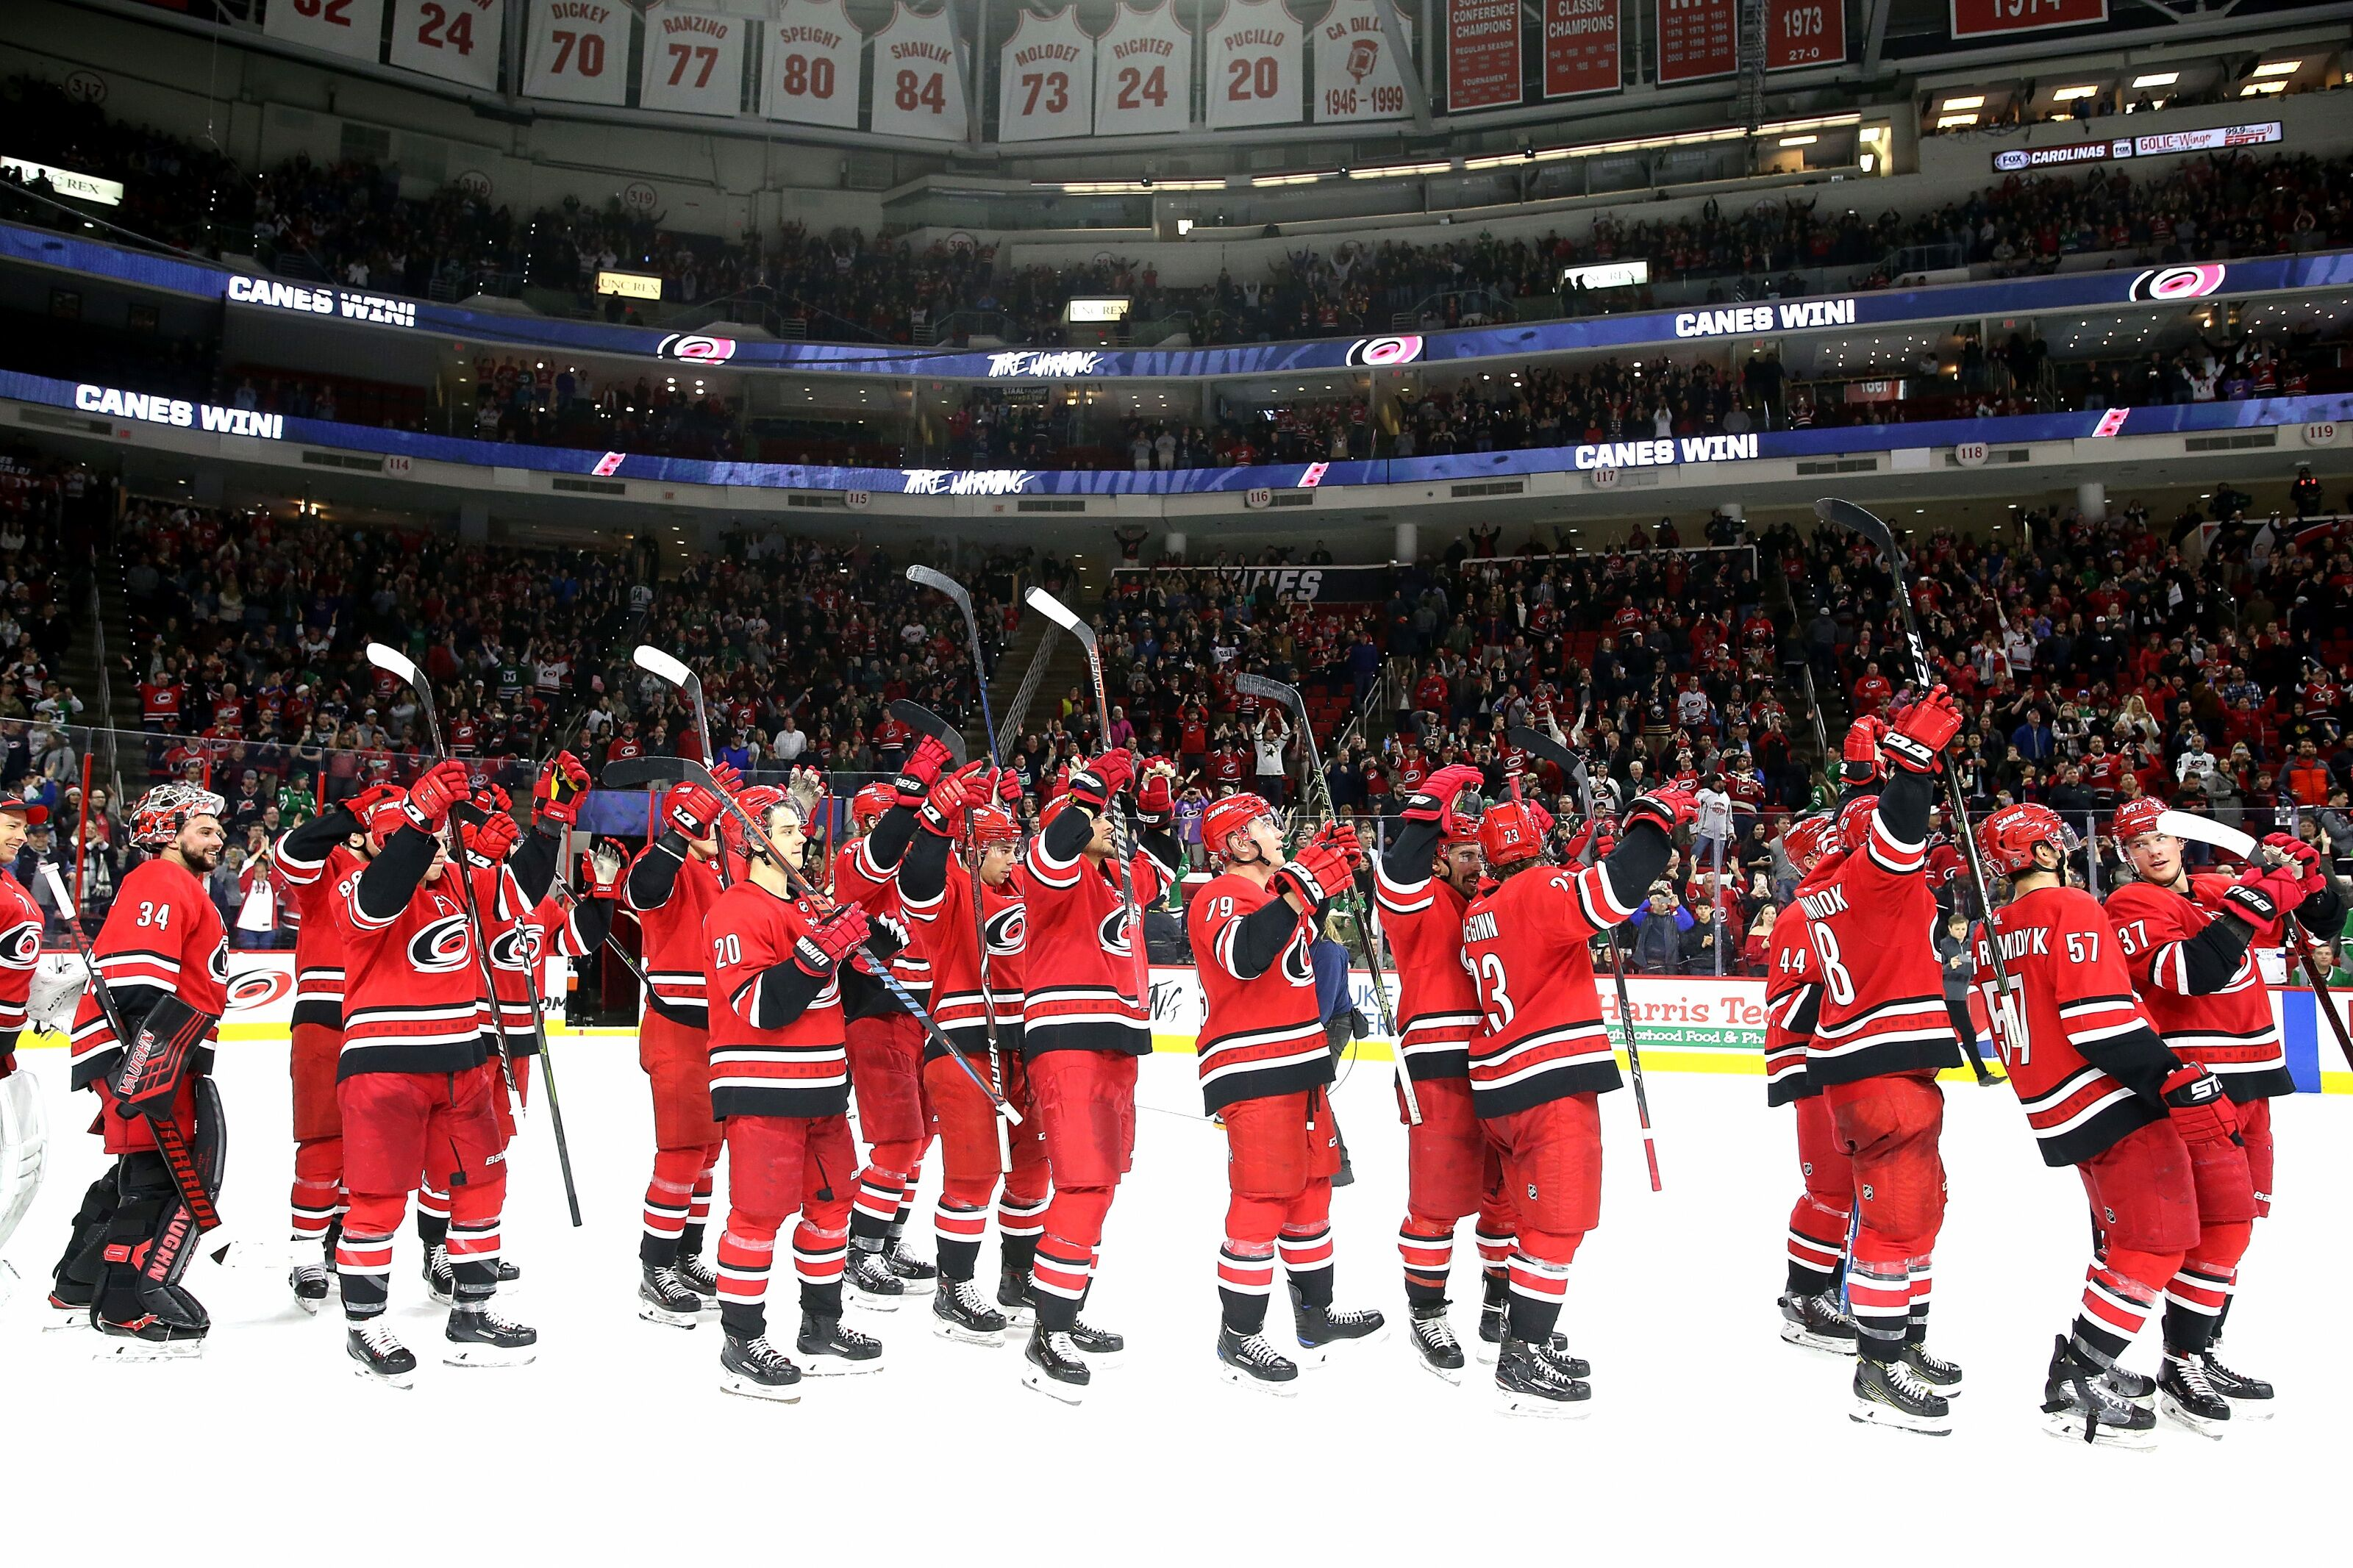 Carolina Hurricanes: Strengths and weaknesses